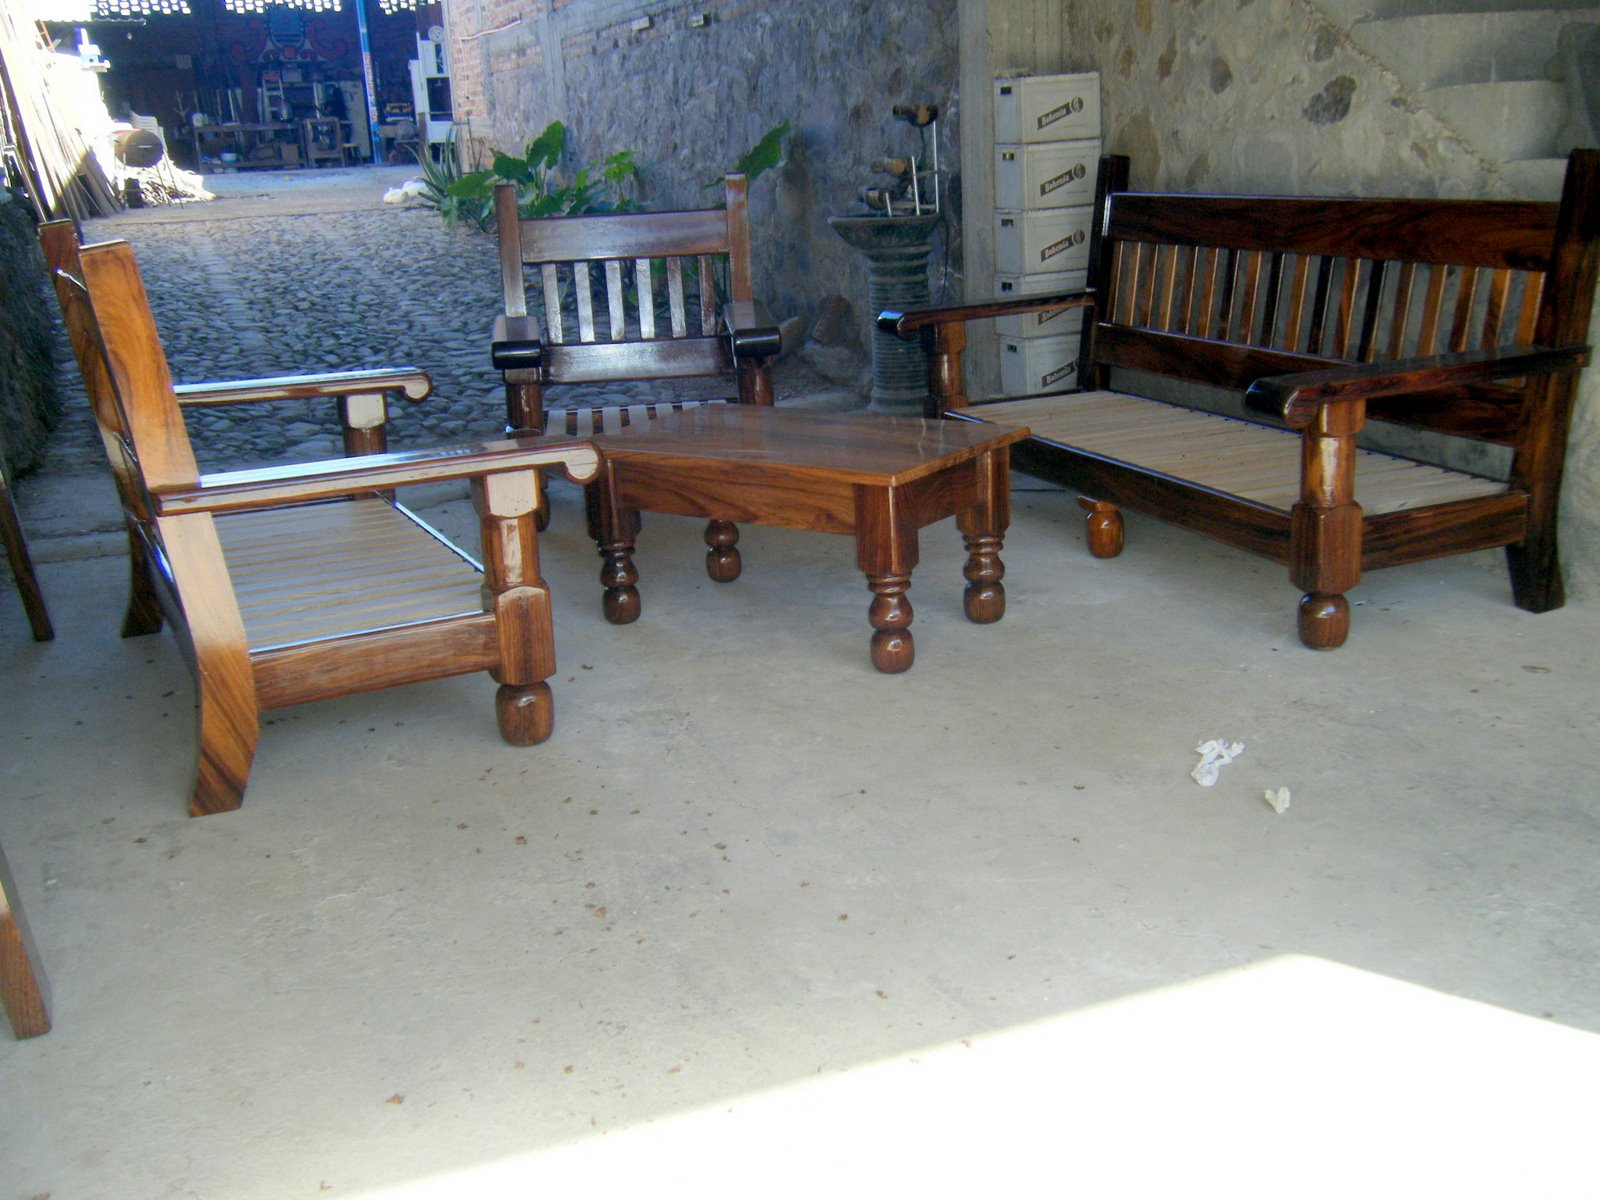 Muebles de madera colineal 20170812152950 for Salas coloniales